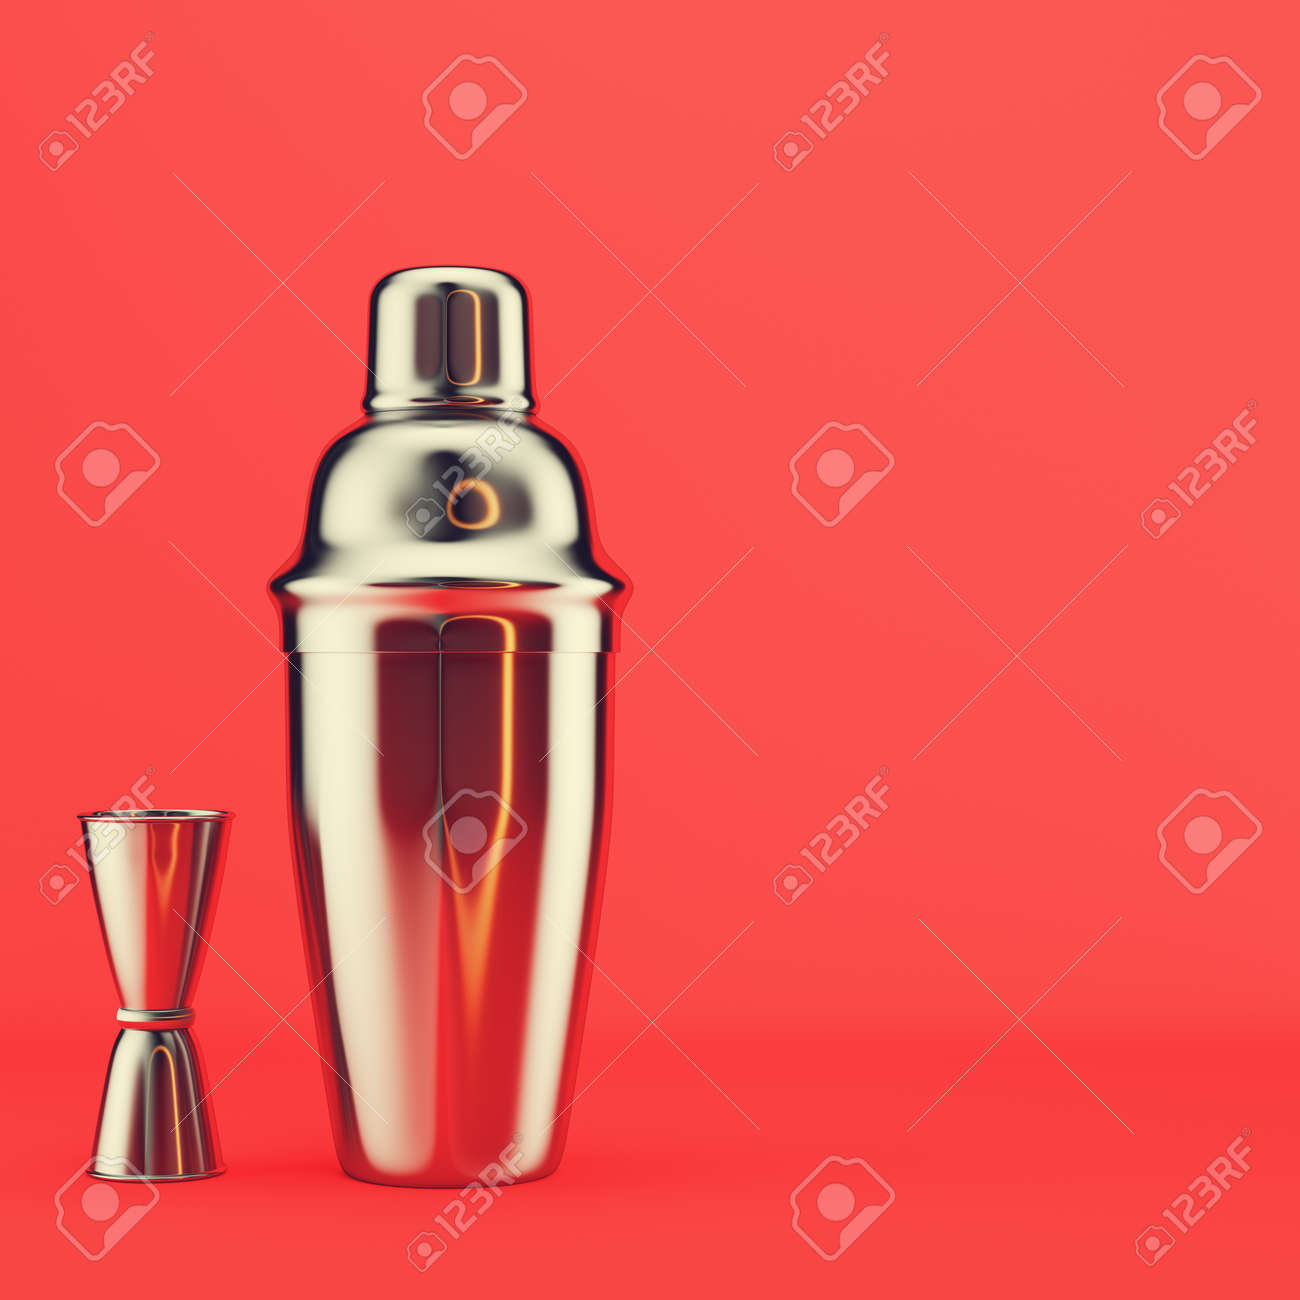 Shaker and jigger on red background. 3d render - 170609763